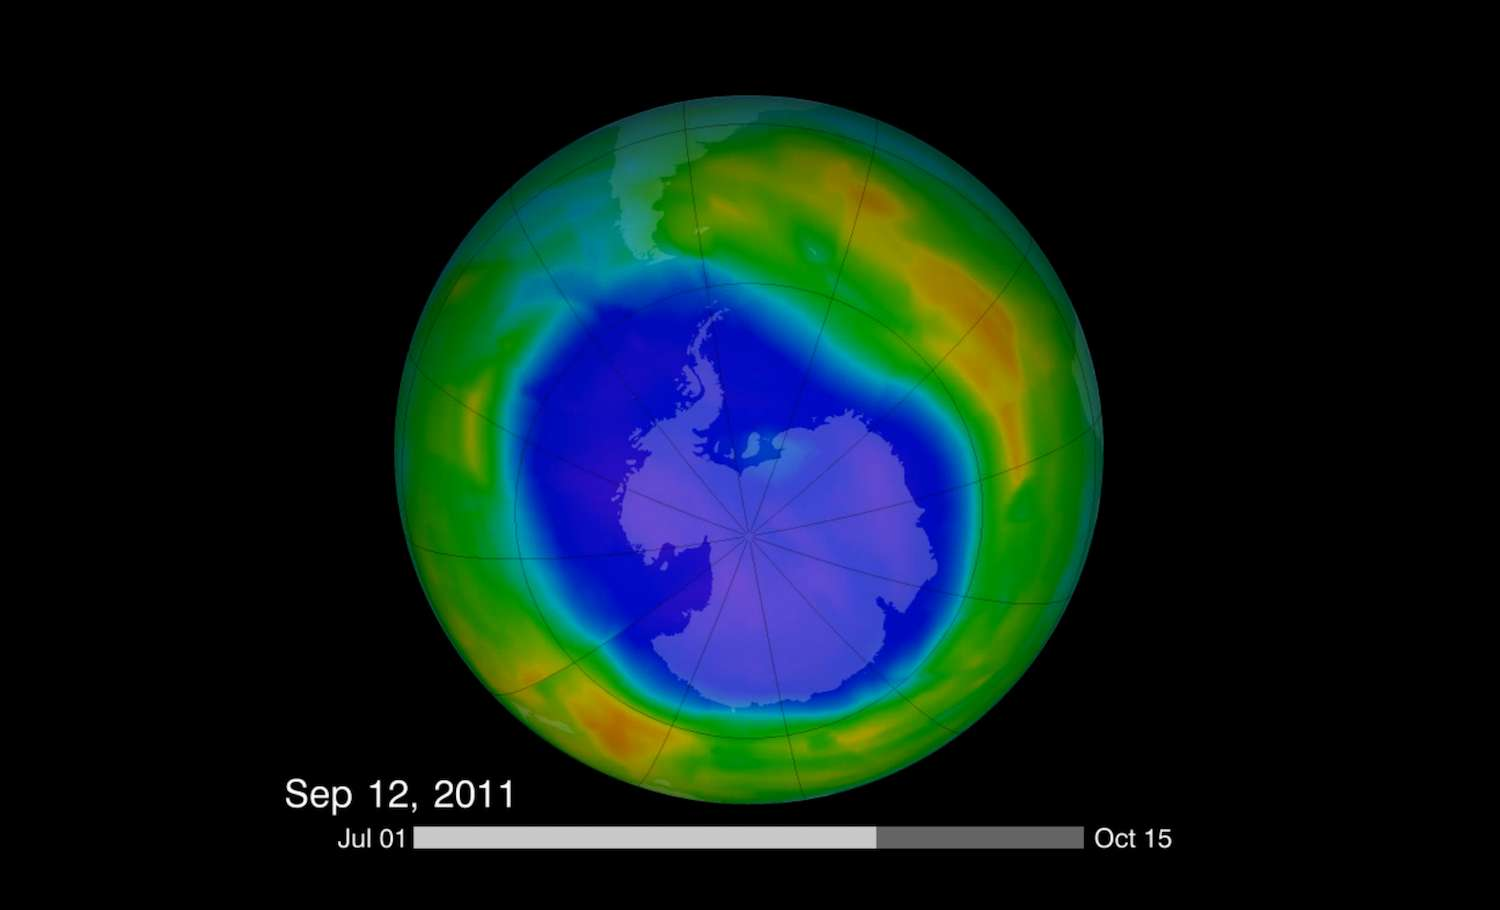 Les activités humaines ont brisé l'équilibre fragile entre destruction et formation de la couche d'ozone. Cette image montre l'étendue du trou dans la couche d'ozone, en date du 12 septembre 2011. © NASA Goddard Space Flight Center, Flickr, CC by 2.0